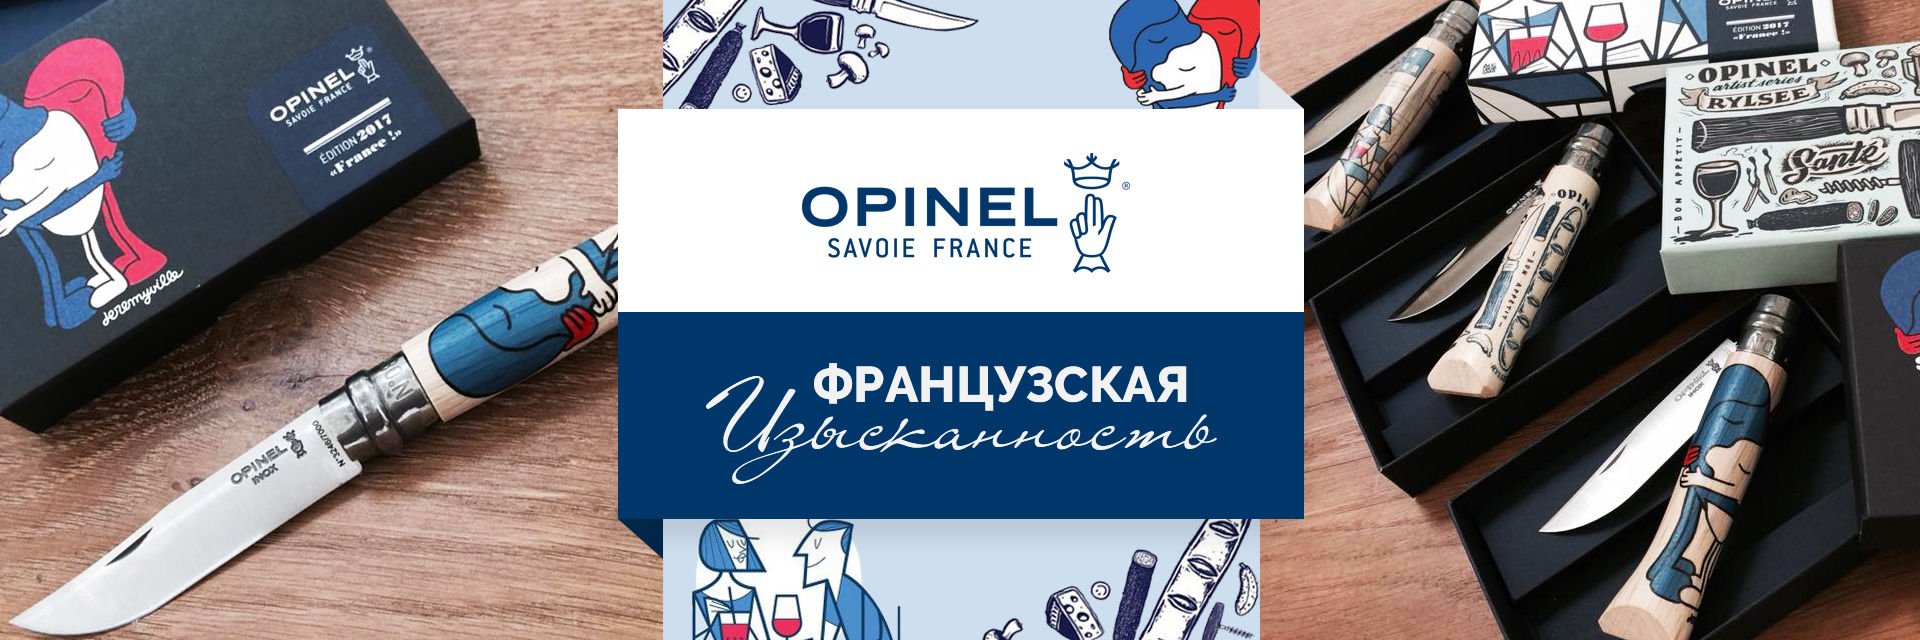 Нож Opinel №8 Edition France